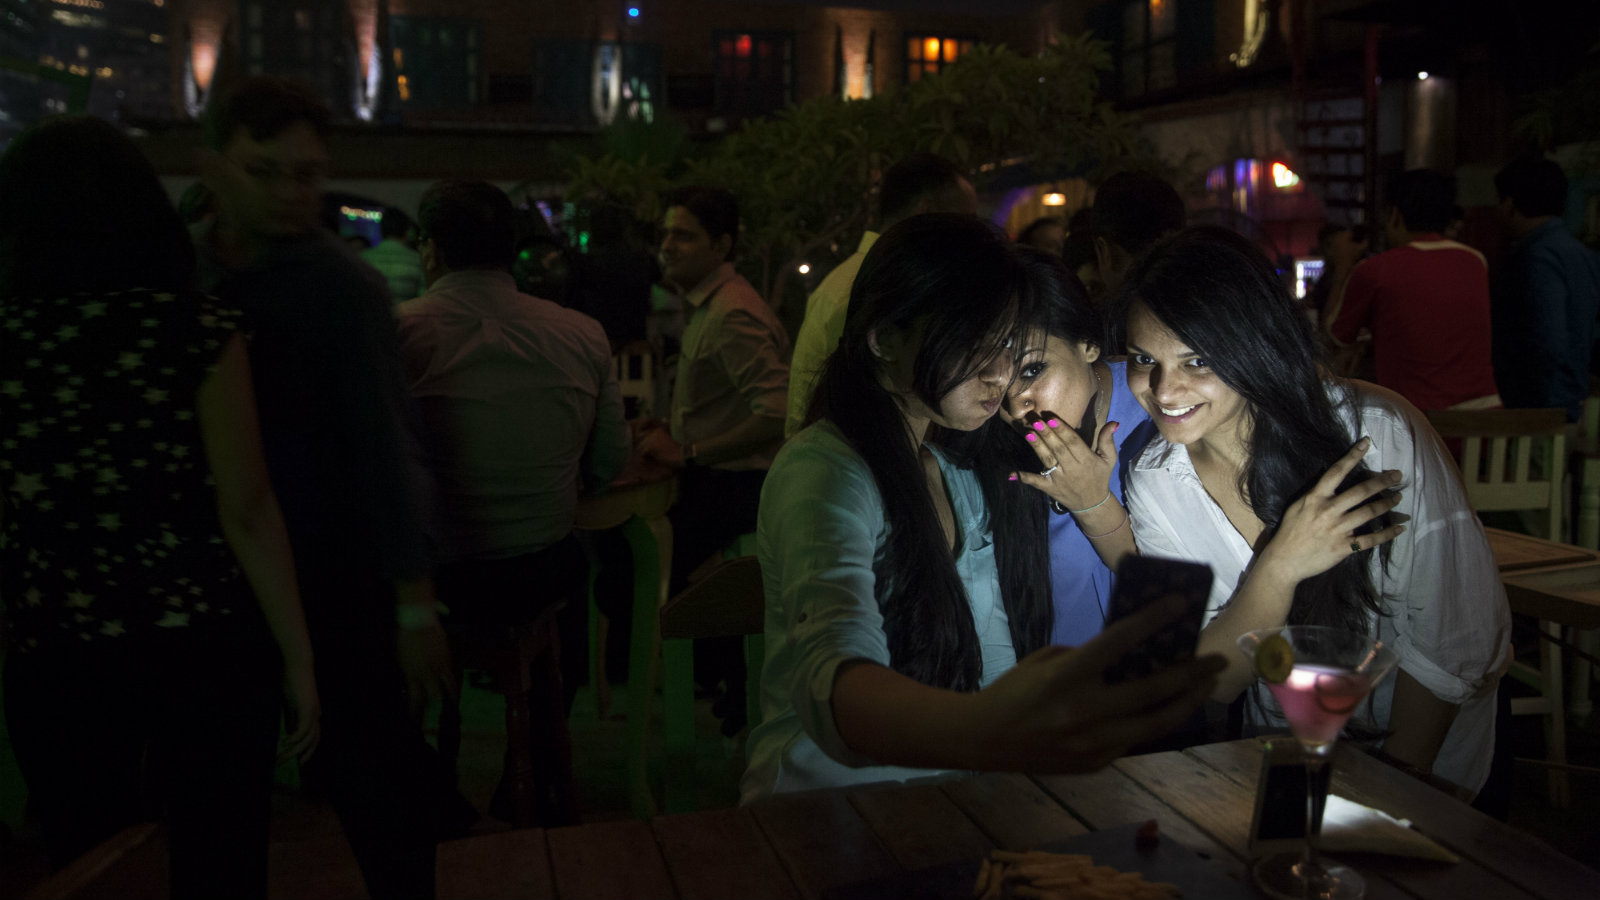 """In this June 11, 2015 photo, Indian girls take a selfie at a party hosted by """"TrulyMadly,"""" one of India's online dating apps in Gurgaon, India. Hundreds of thousands of young Indians are nervously exploring online dating apps, breaking with India's centuries-old traditions governing marriage and social conduct. The dating app market has exploded in recent years, with more than a dozen companies operating in the country and more than a million smartphone users who have downloaded at least one of them."""